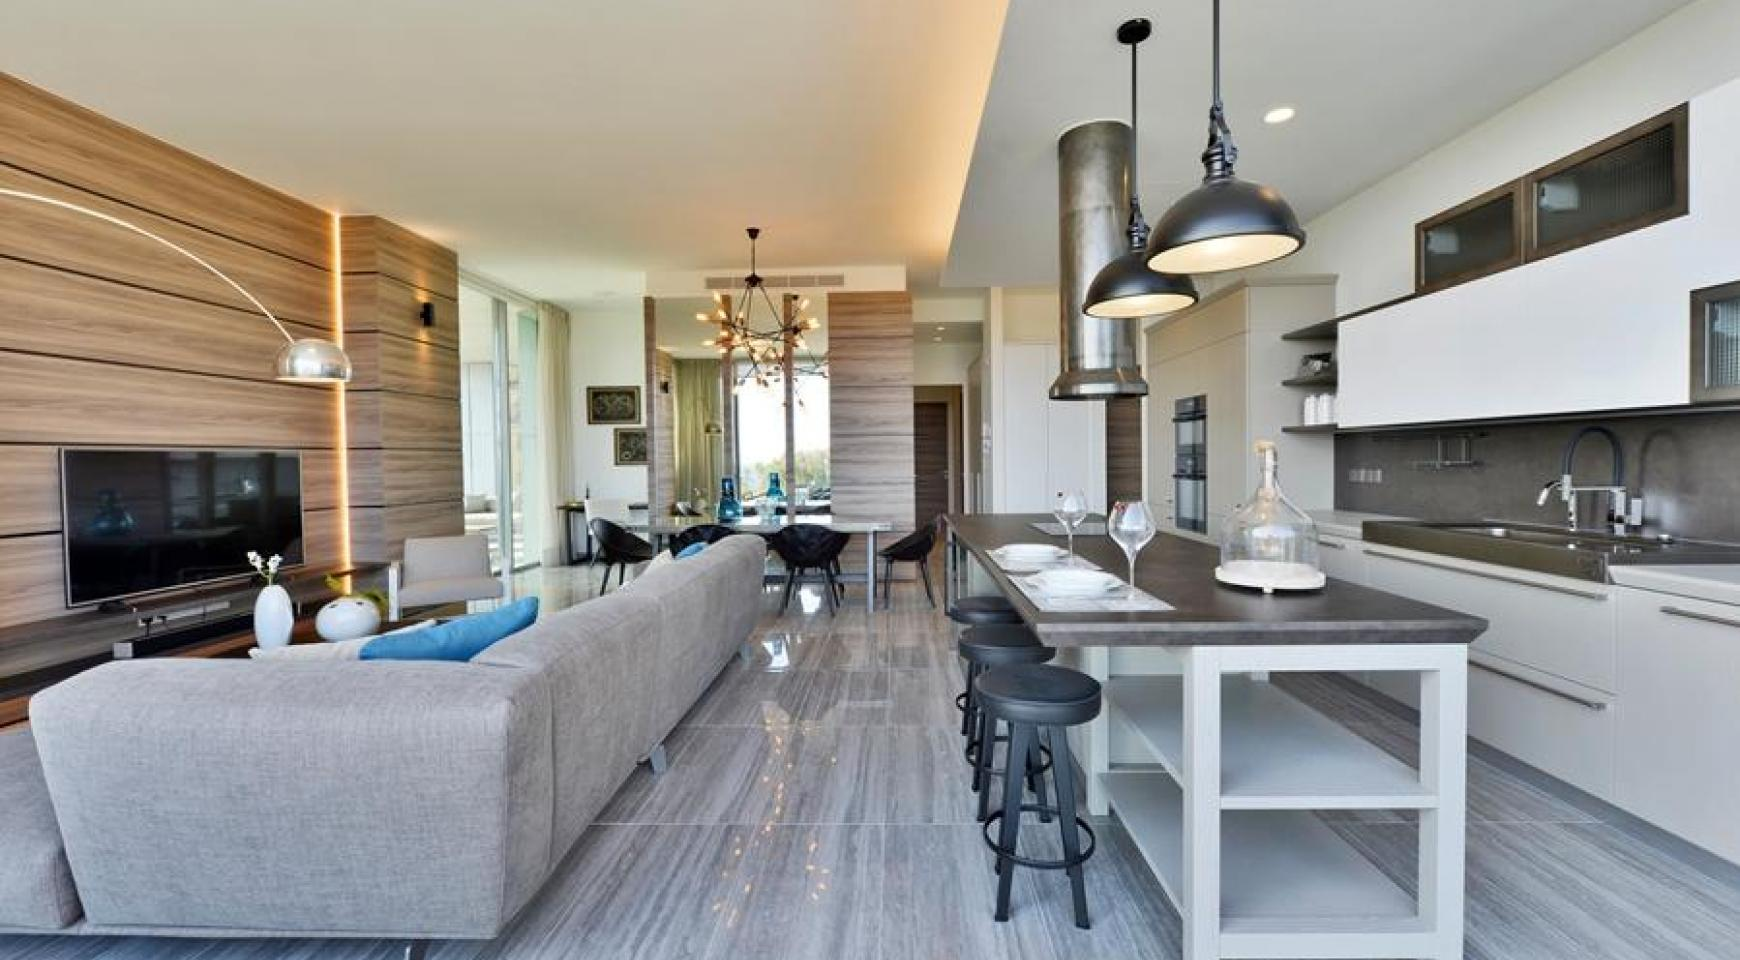 Elite 3 Bedroom Apartment within a New Complex near the Sea - 3